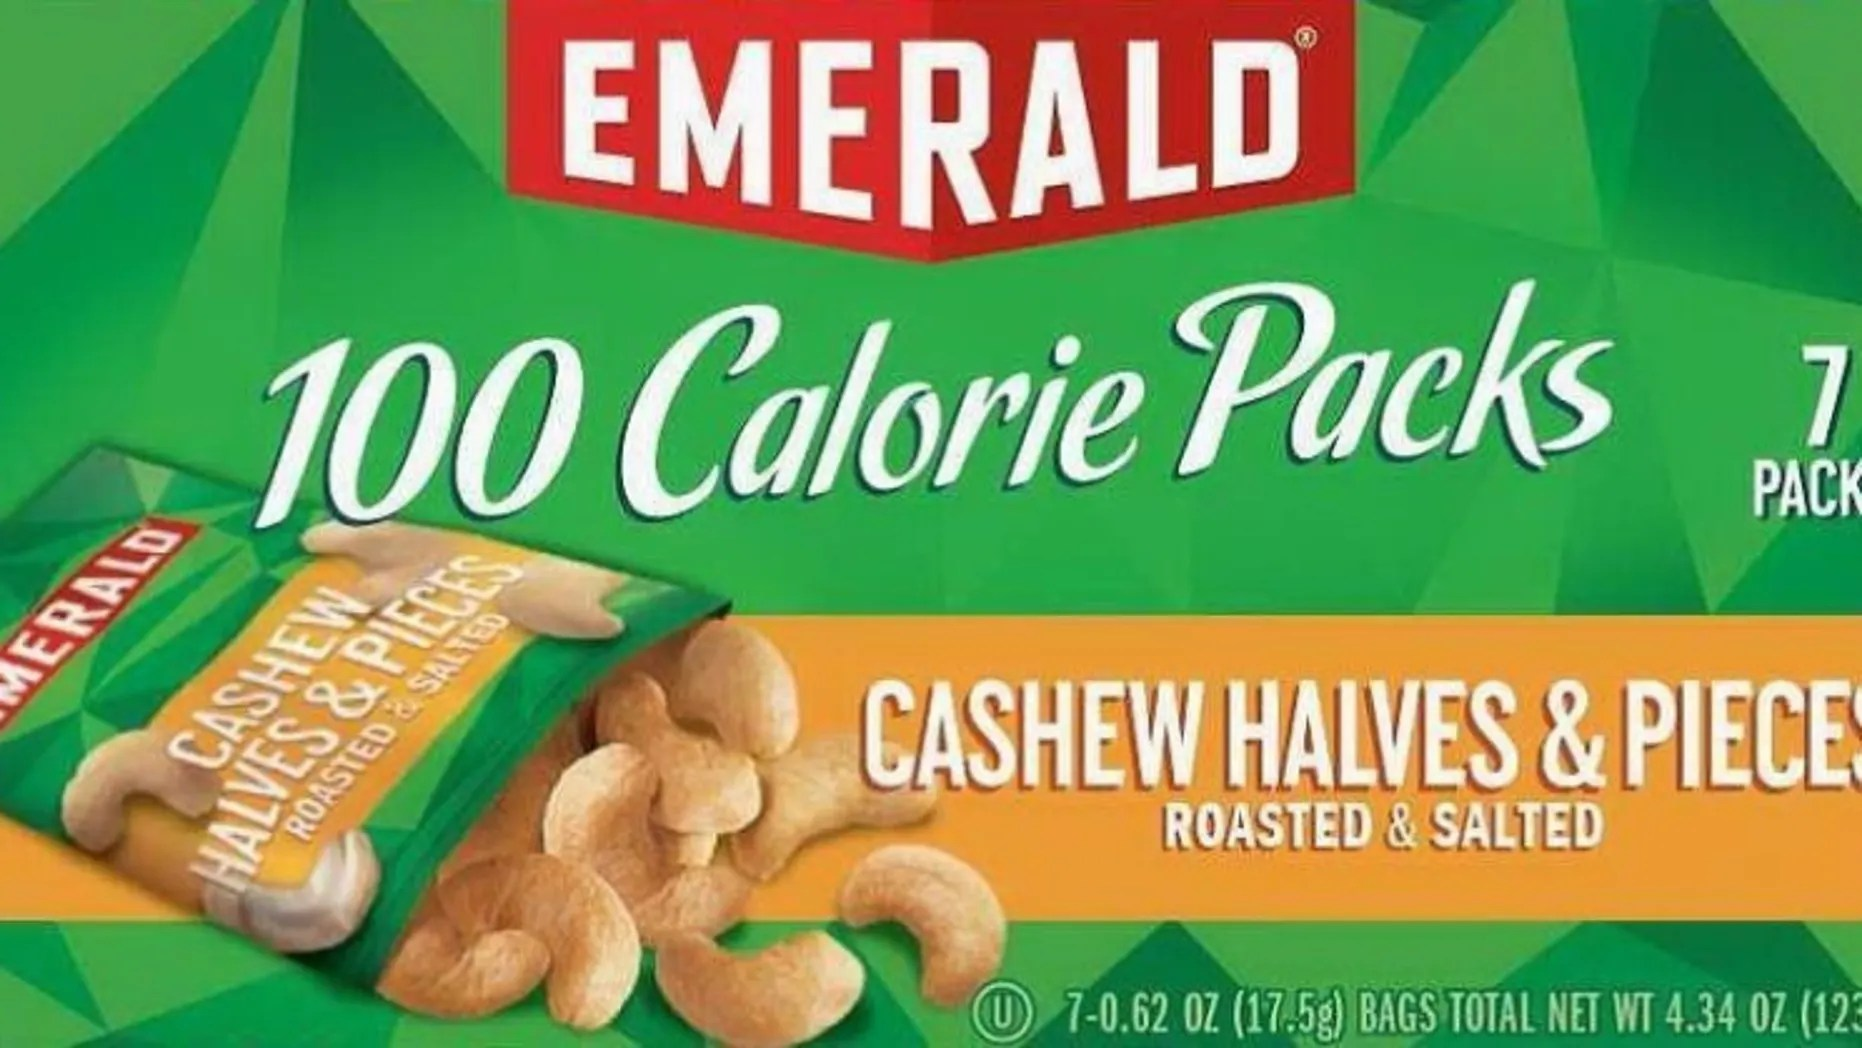 Imposing Packages Emerald Issues Cashew Recall After Glass Found Emerald Issues Cashew Recall After Glass Found Packages Fox News Bumble Bee Recall 2018 Bumble Bee Recall 2016 nice food Bumble Bee Recall